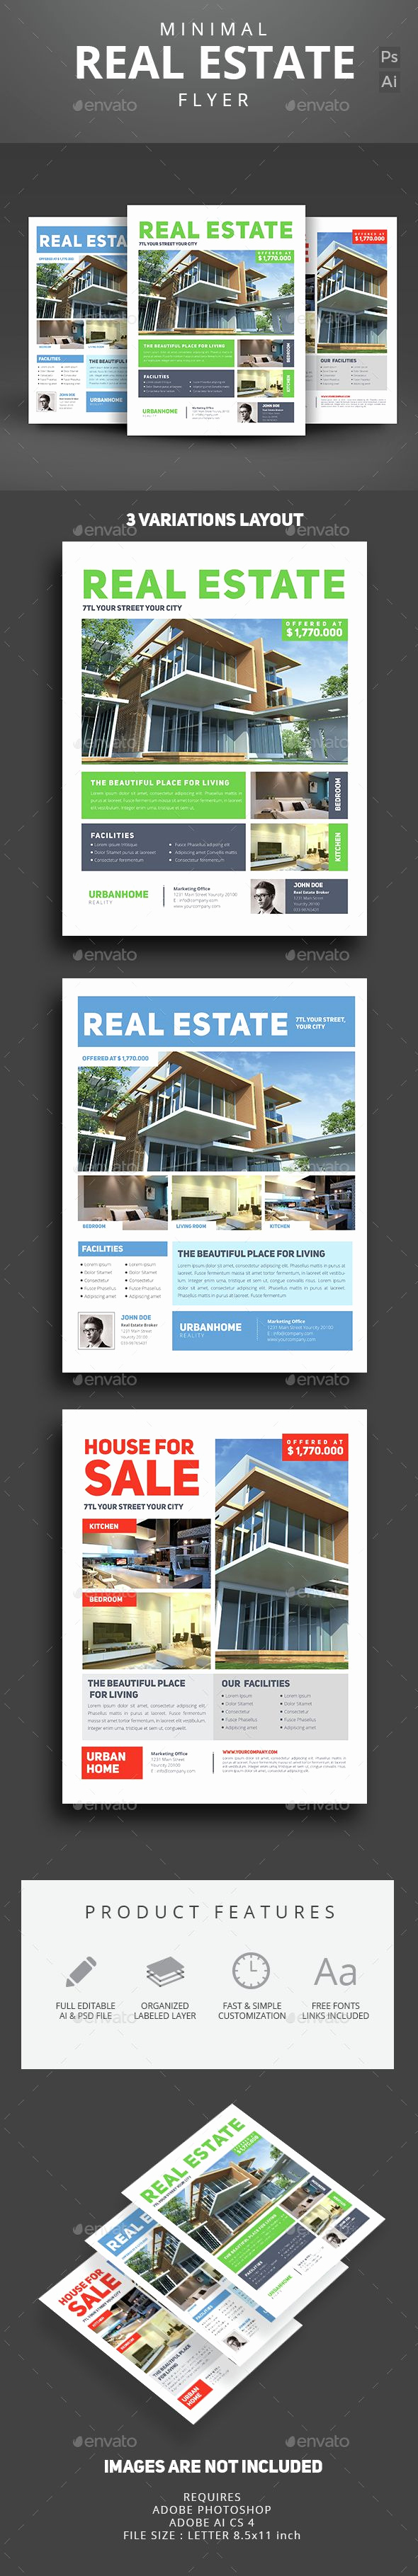 Real Estate Flyer Ideas New 1000 Ideas About Marketing Flyers On Pinterest